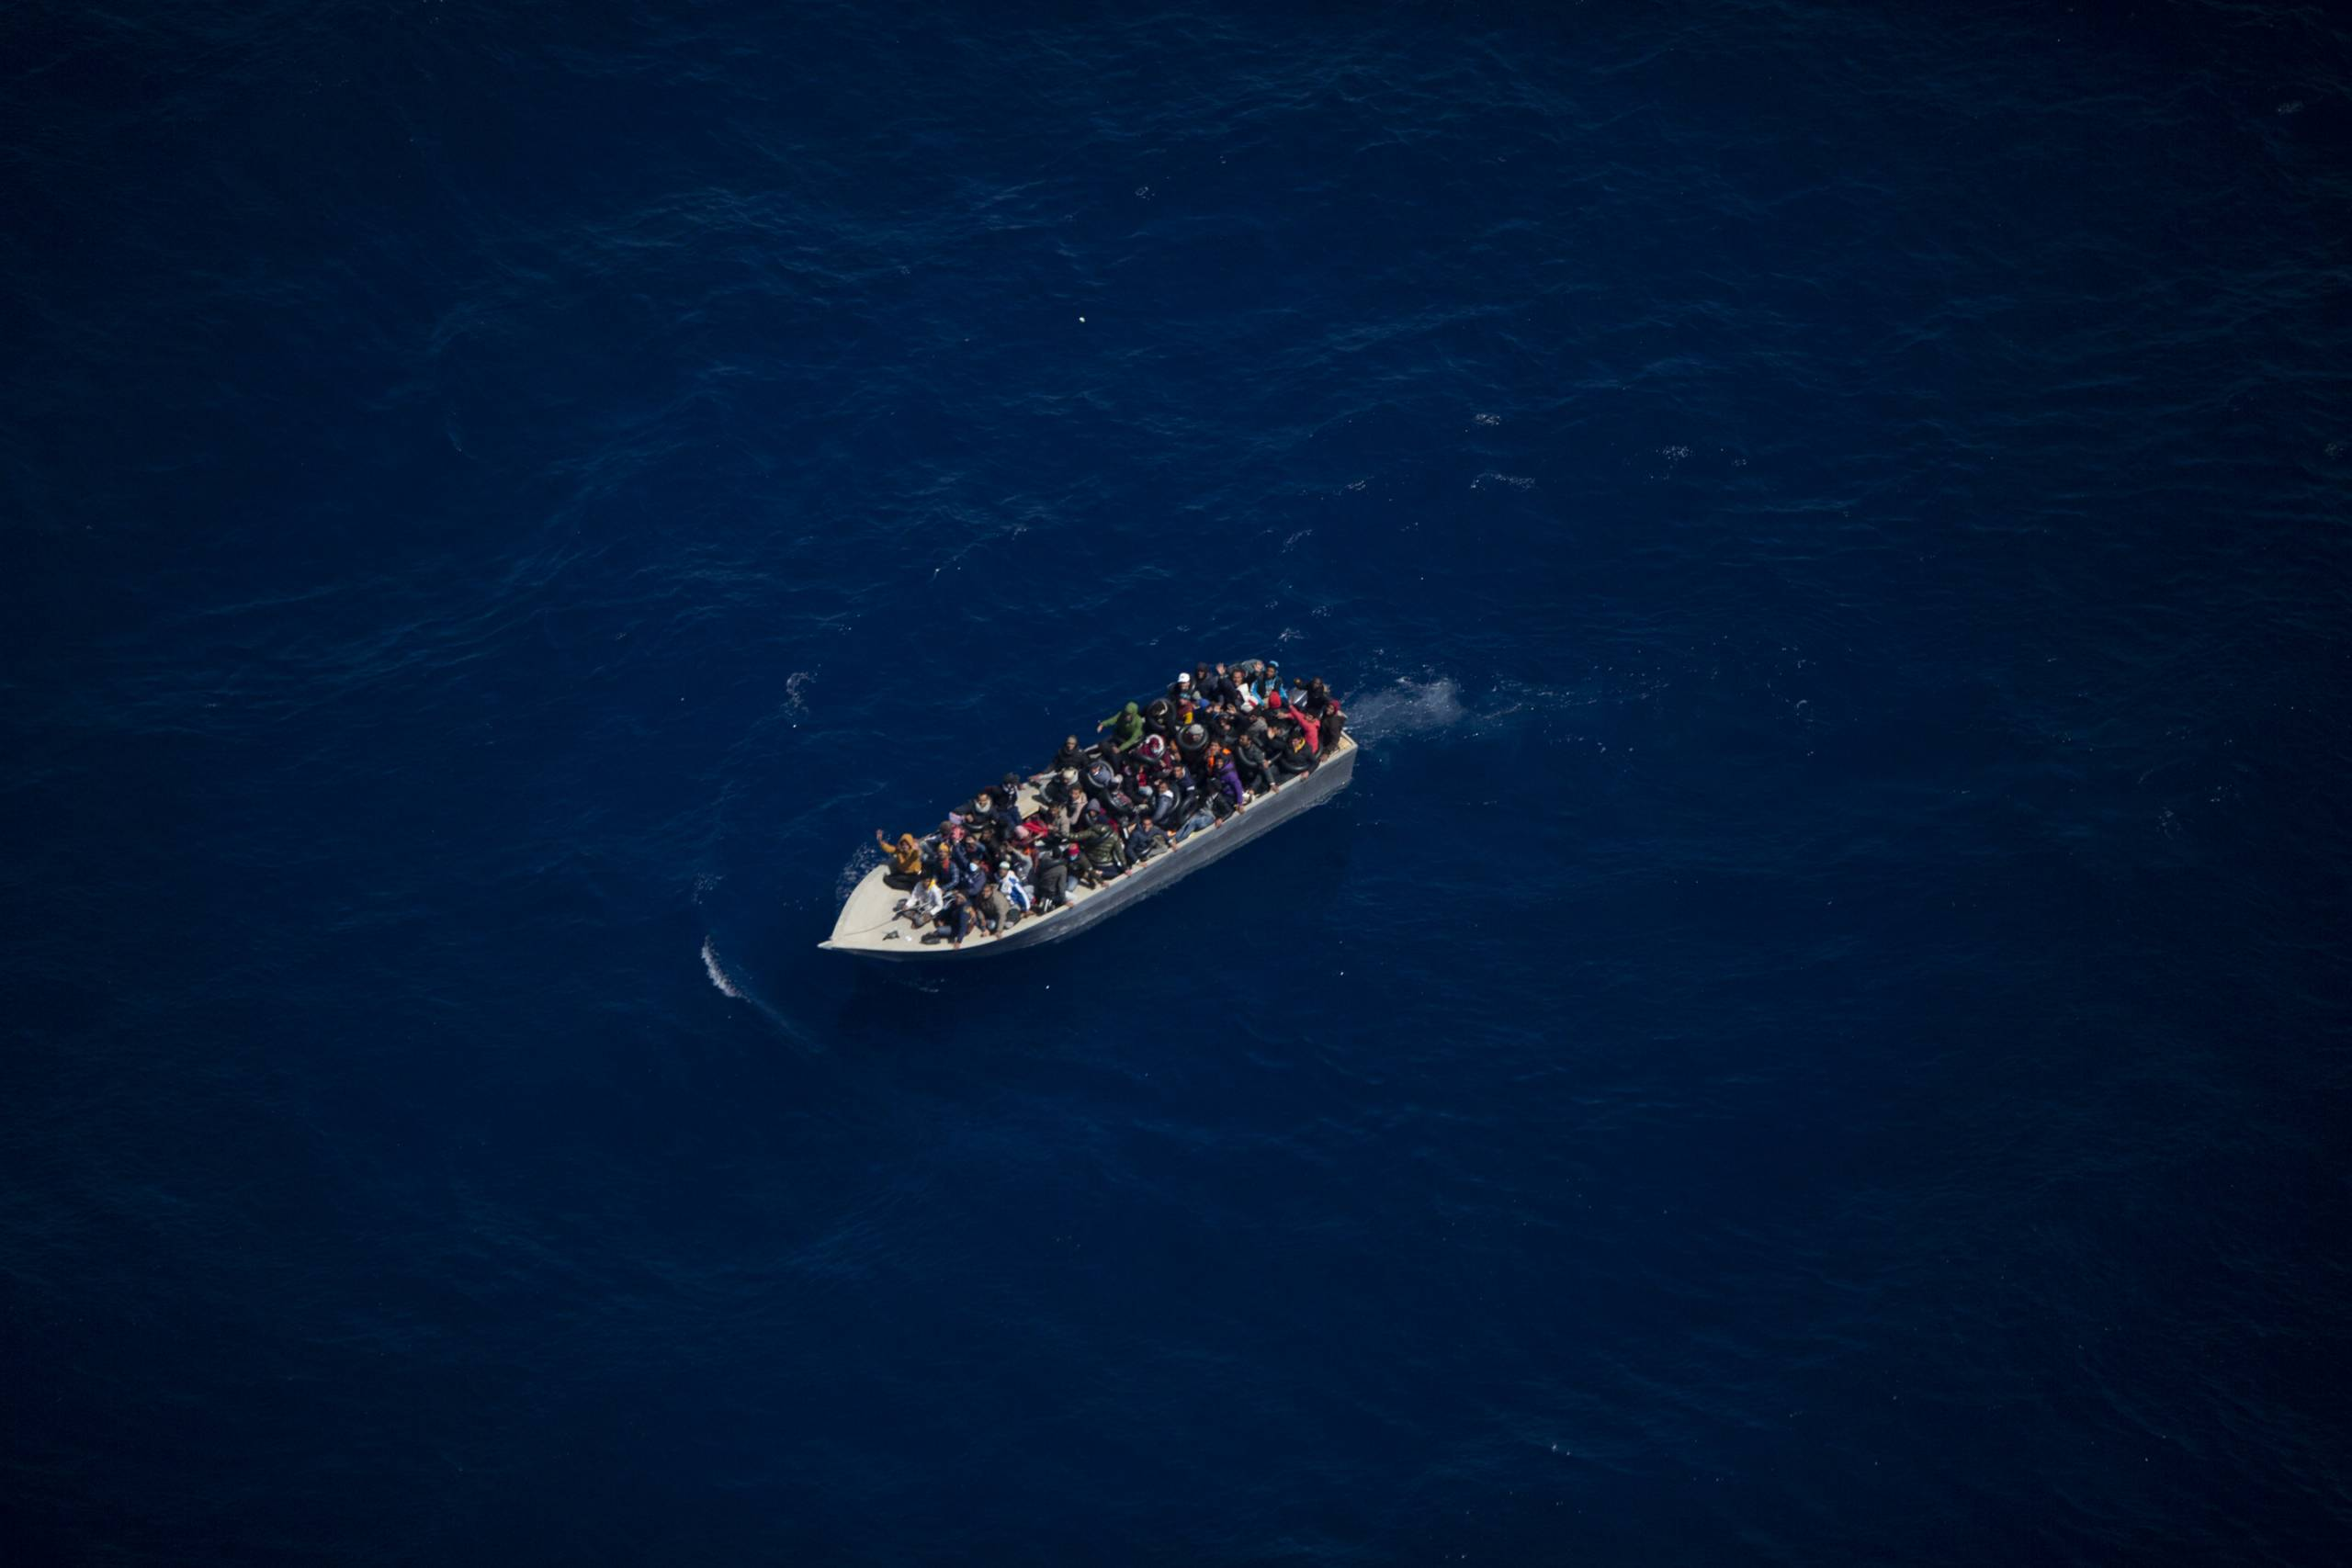 Boat with 85 people onboard drowning in Maltese waters – Alarm Phone